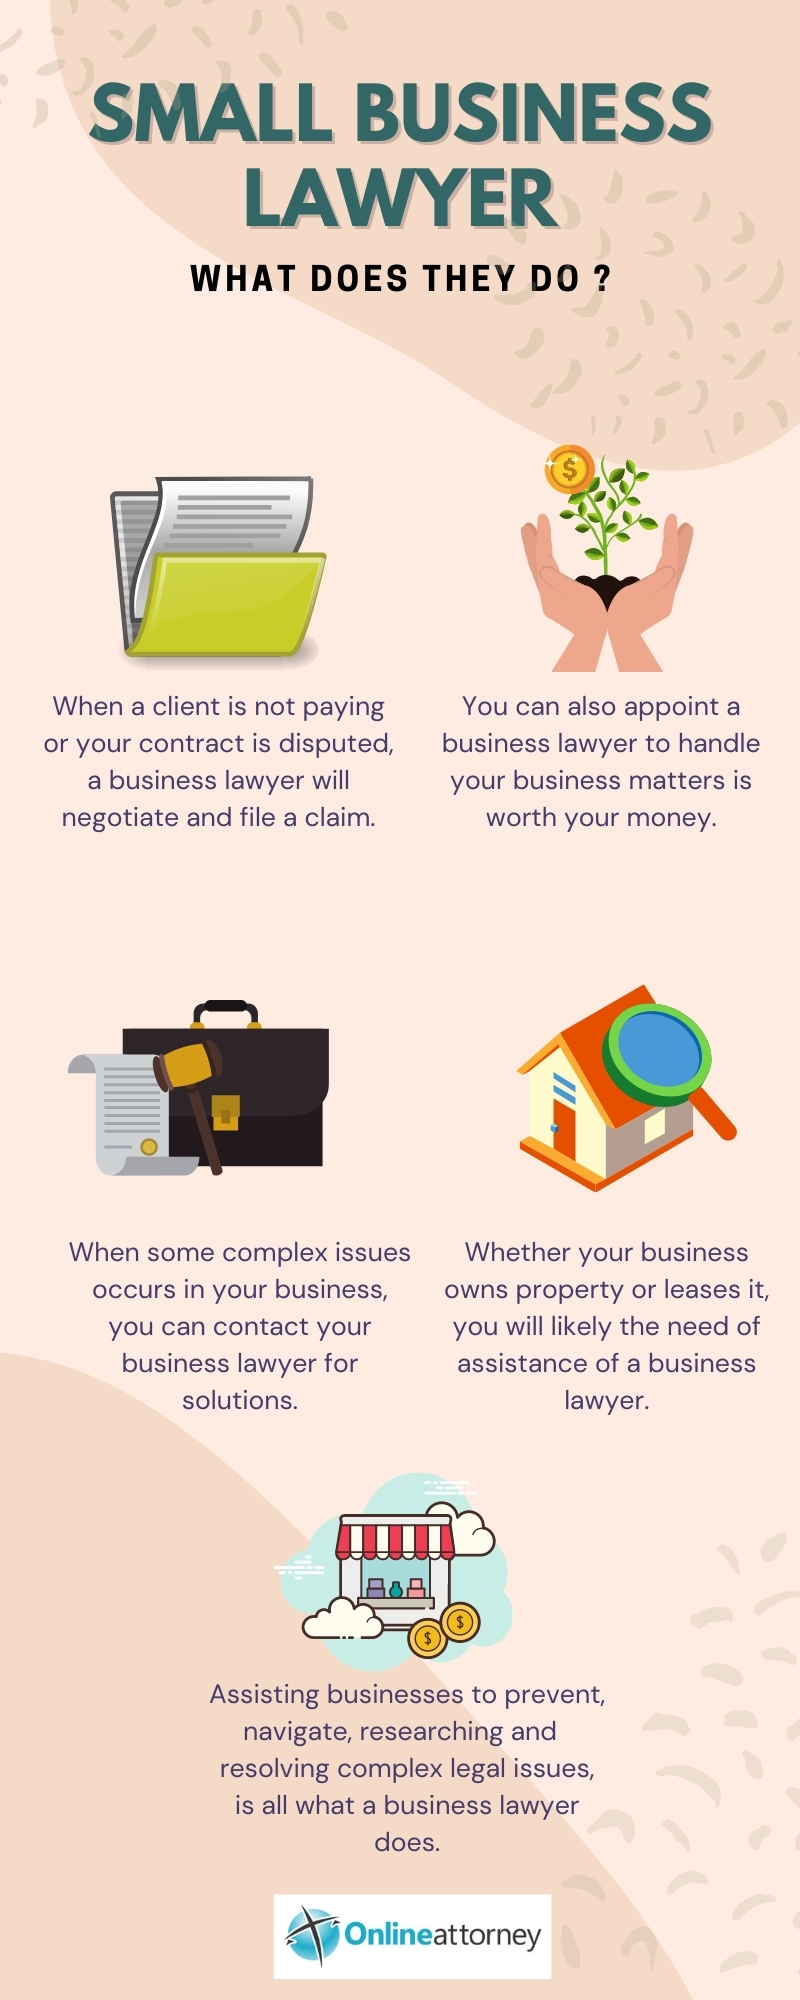 Small Business Lawyer